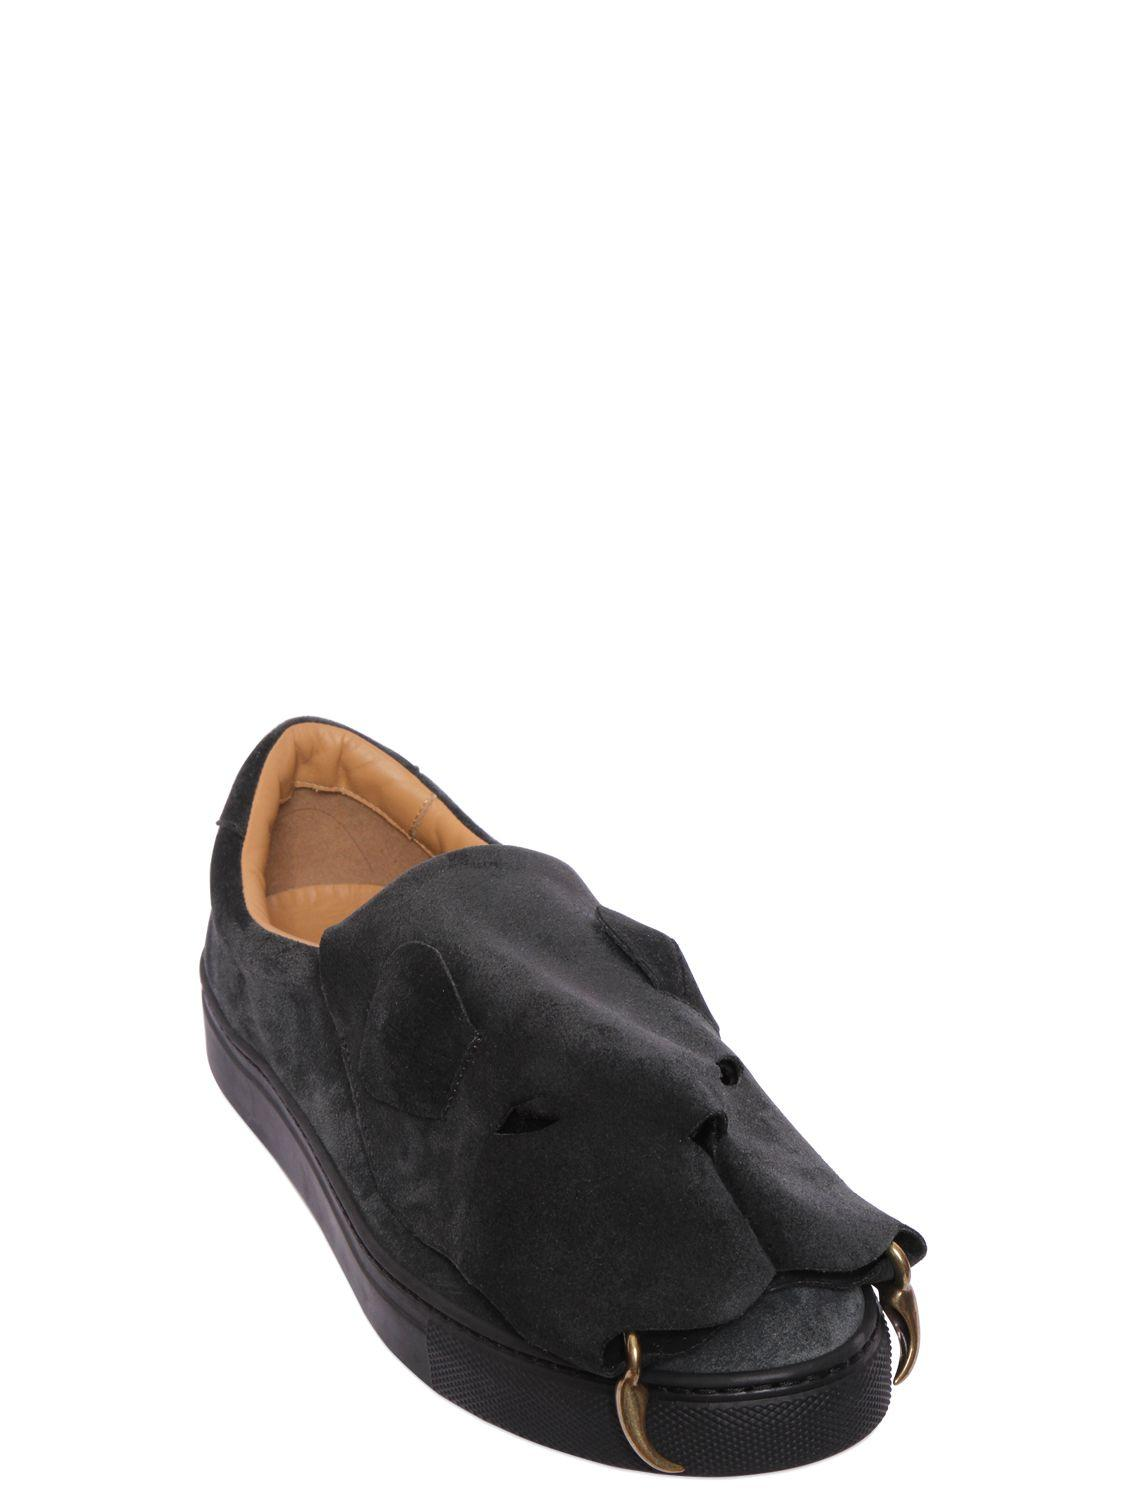 Lyst Vivienne Westwood Tiger Suede Slip On Sneakers In